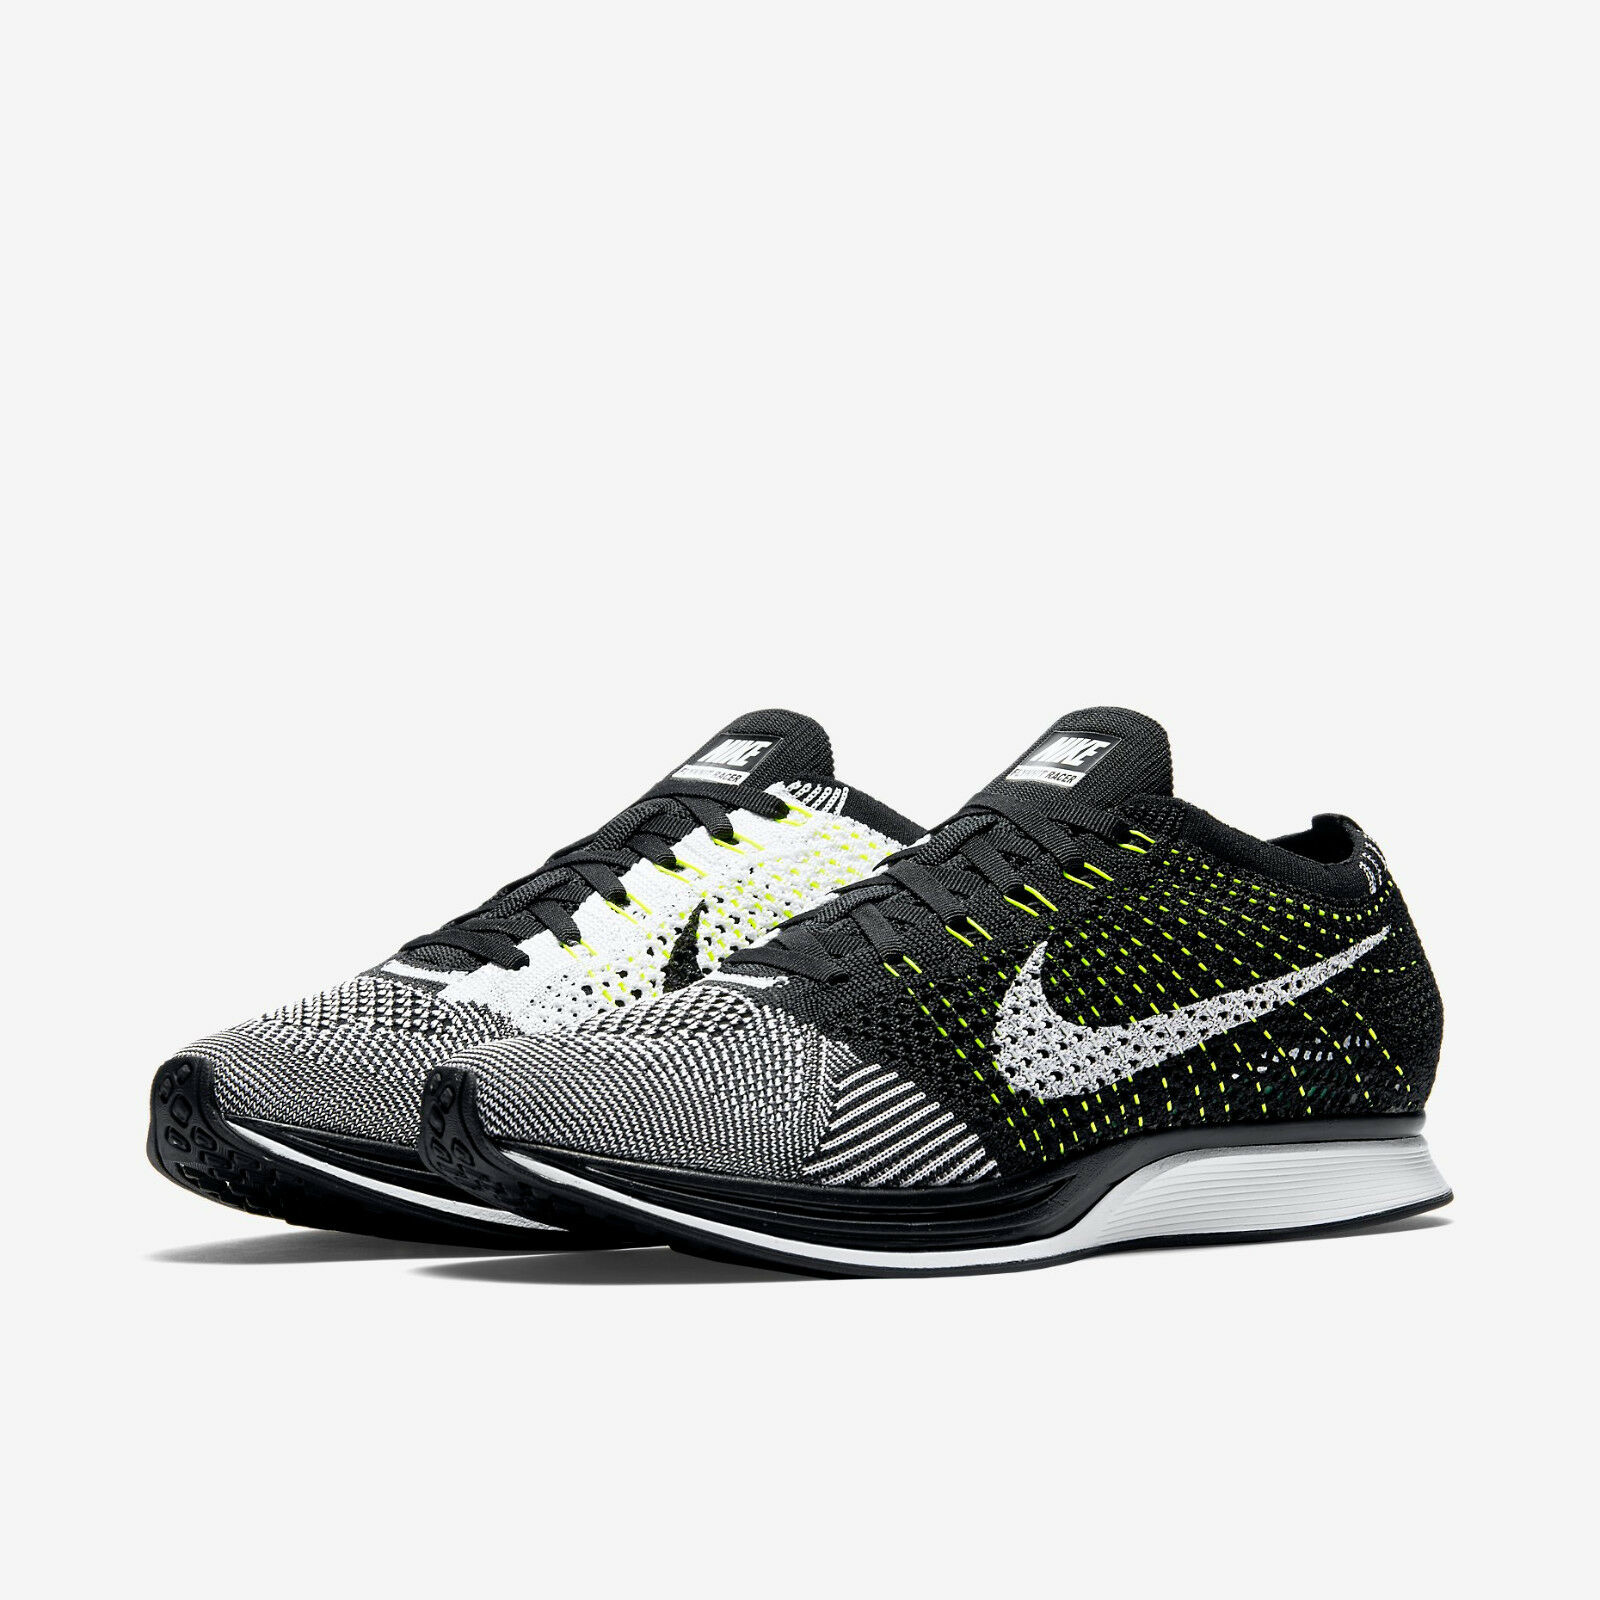 Nike - Flyknit Racer - Oreo - Size 11.5  45.5 - Black   White White - New in Box